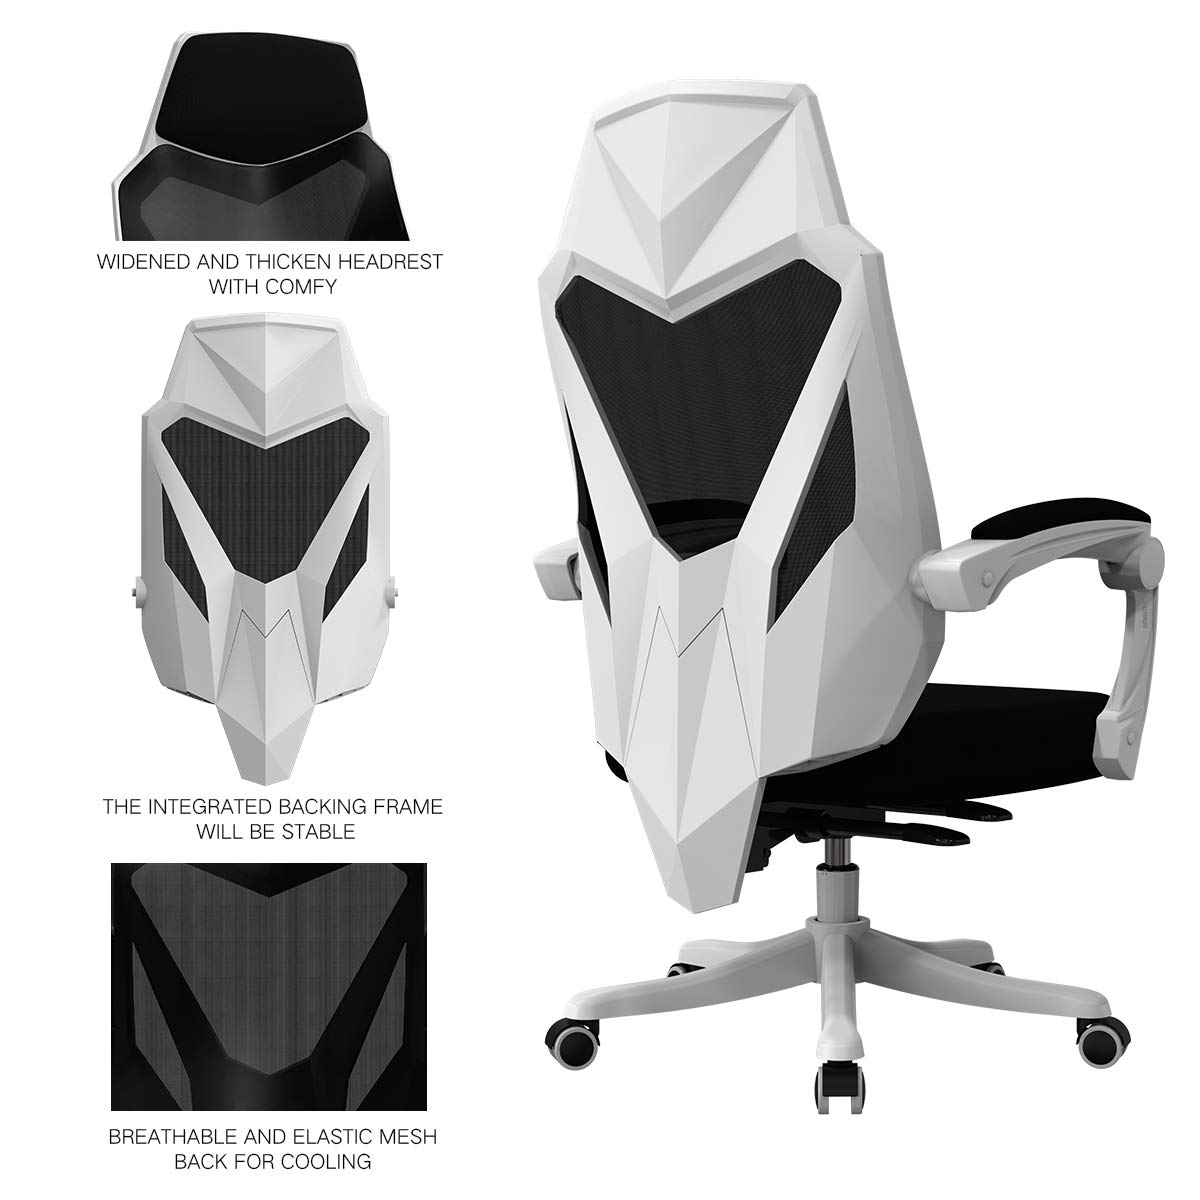 Hbada Office Computer Desk Chair - Ergonomic High-Back Swivel Task Gaming Chair - White by Hbada (Image #3)